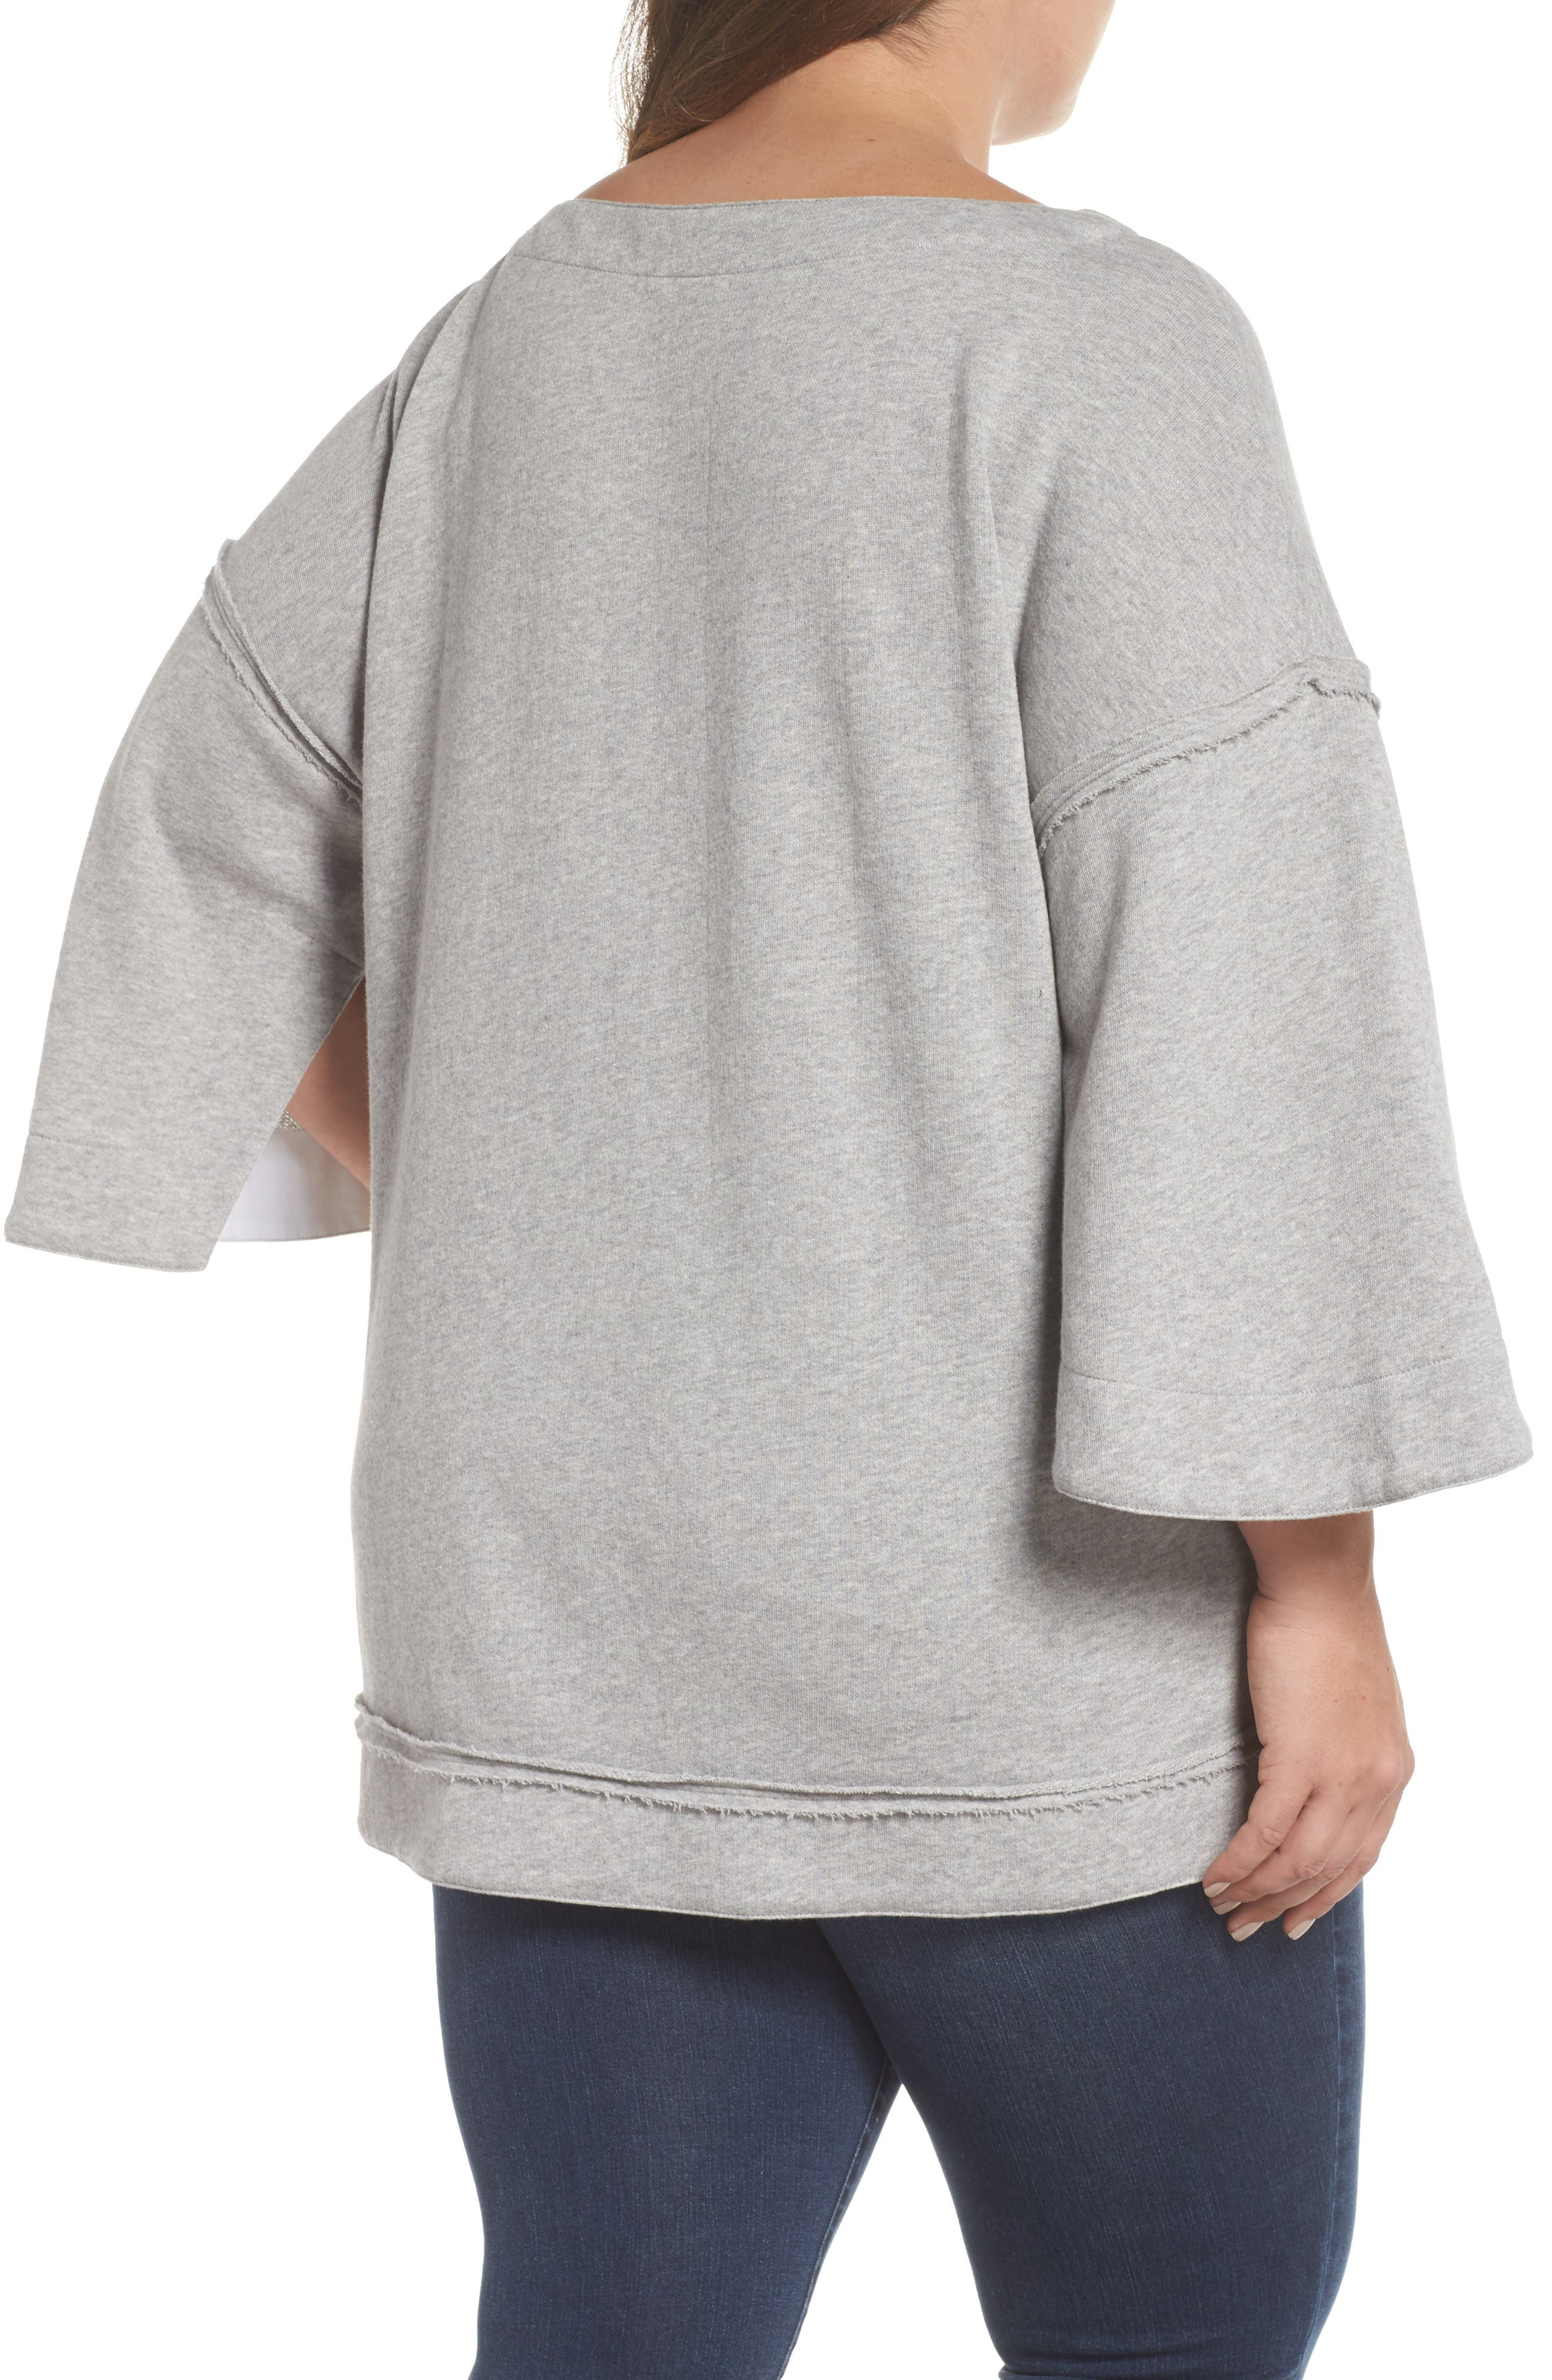 Split Sleeve Sweatshirt,                             Alternate thumbnail 4, color,